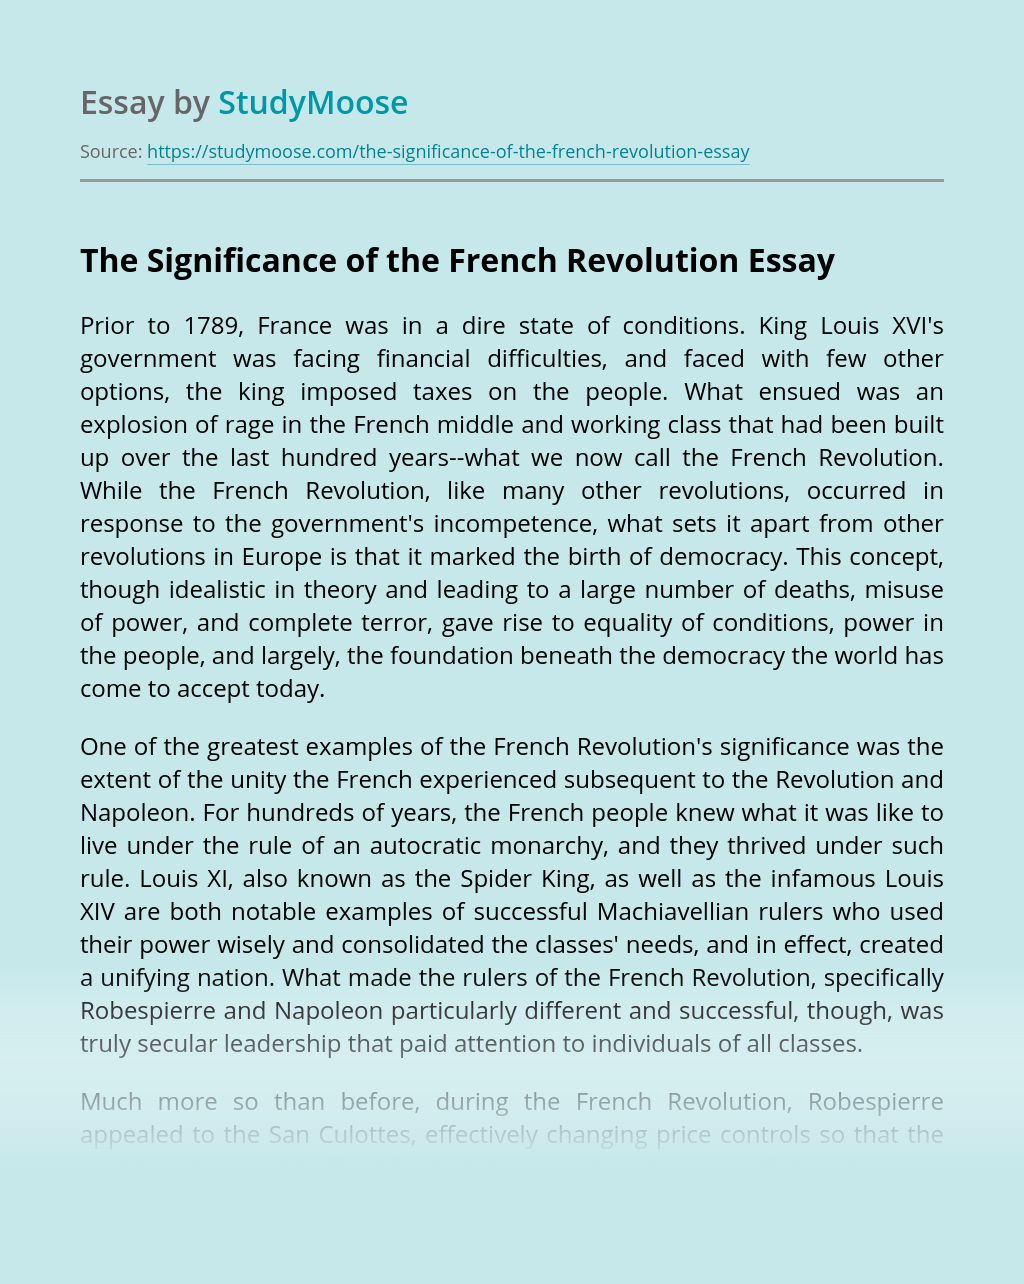 The Significance of the French Revolution